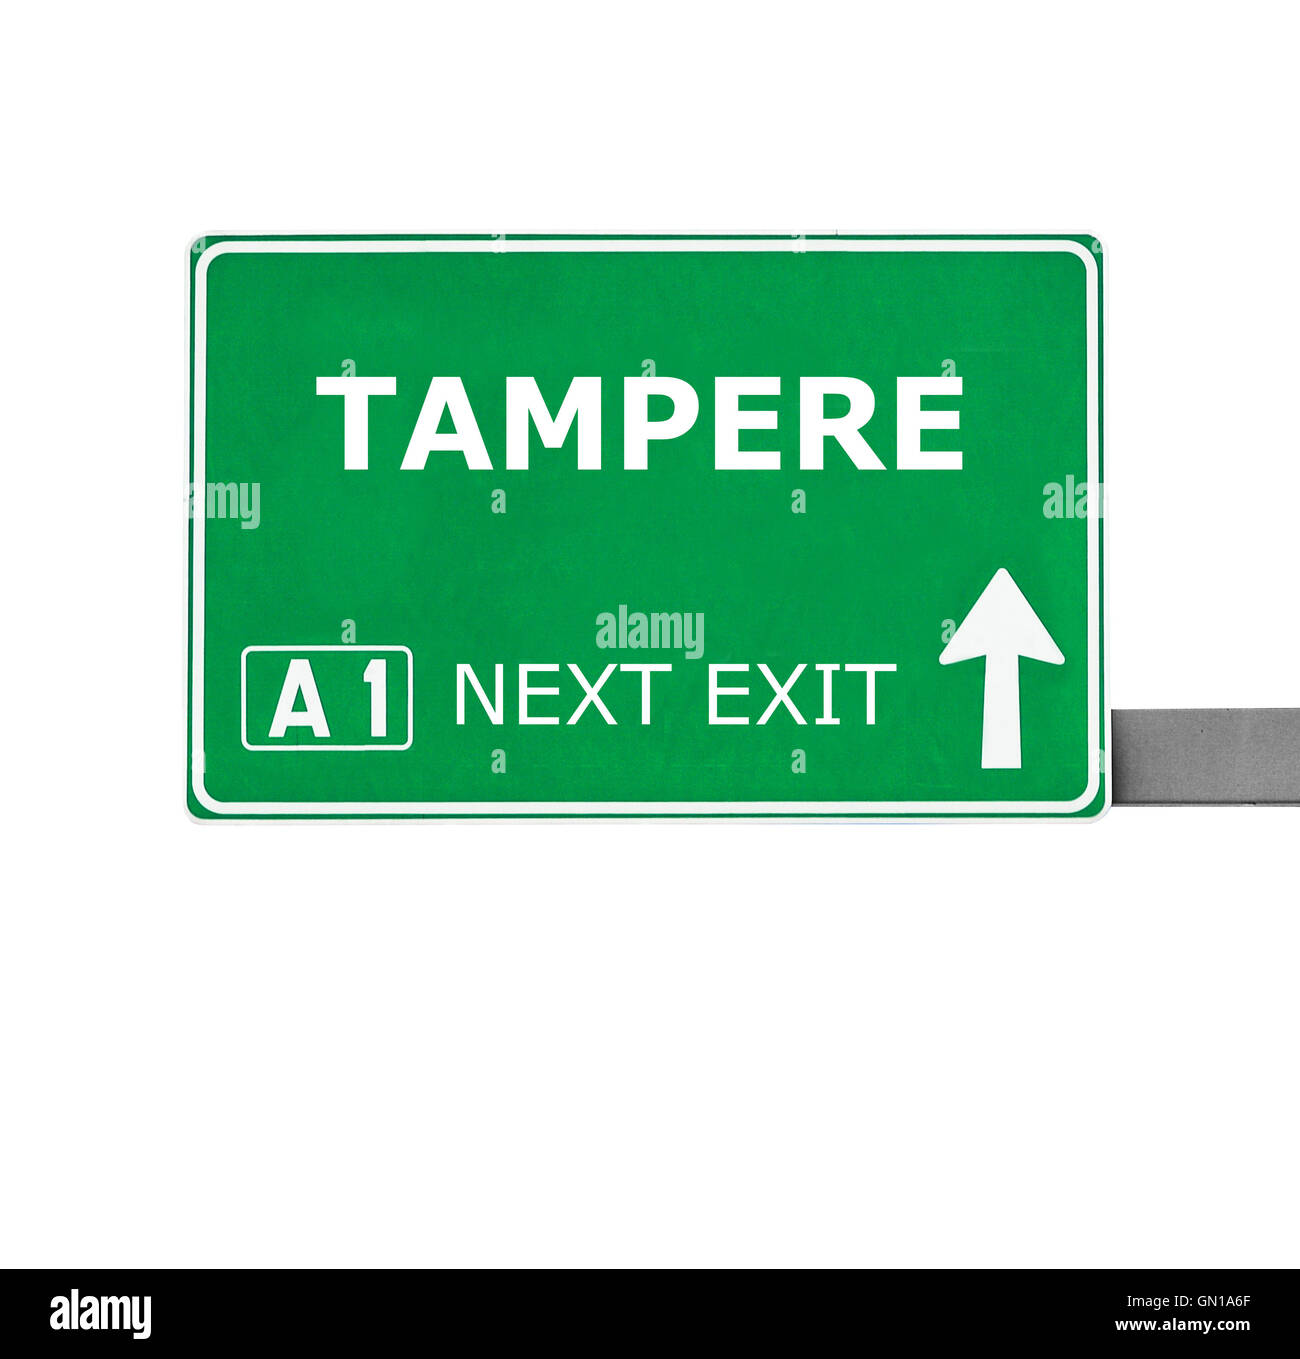 TAMPERE road sign isolated on white - Stock Image